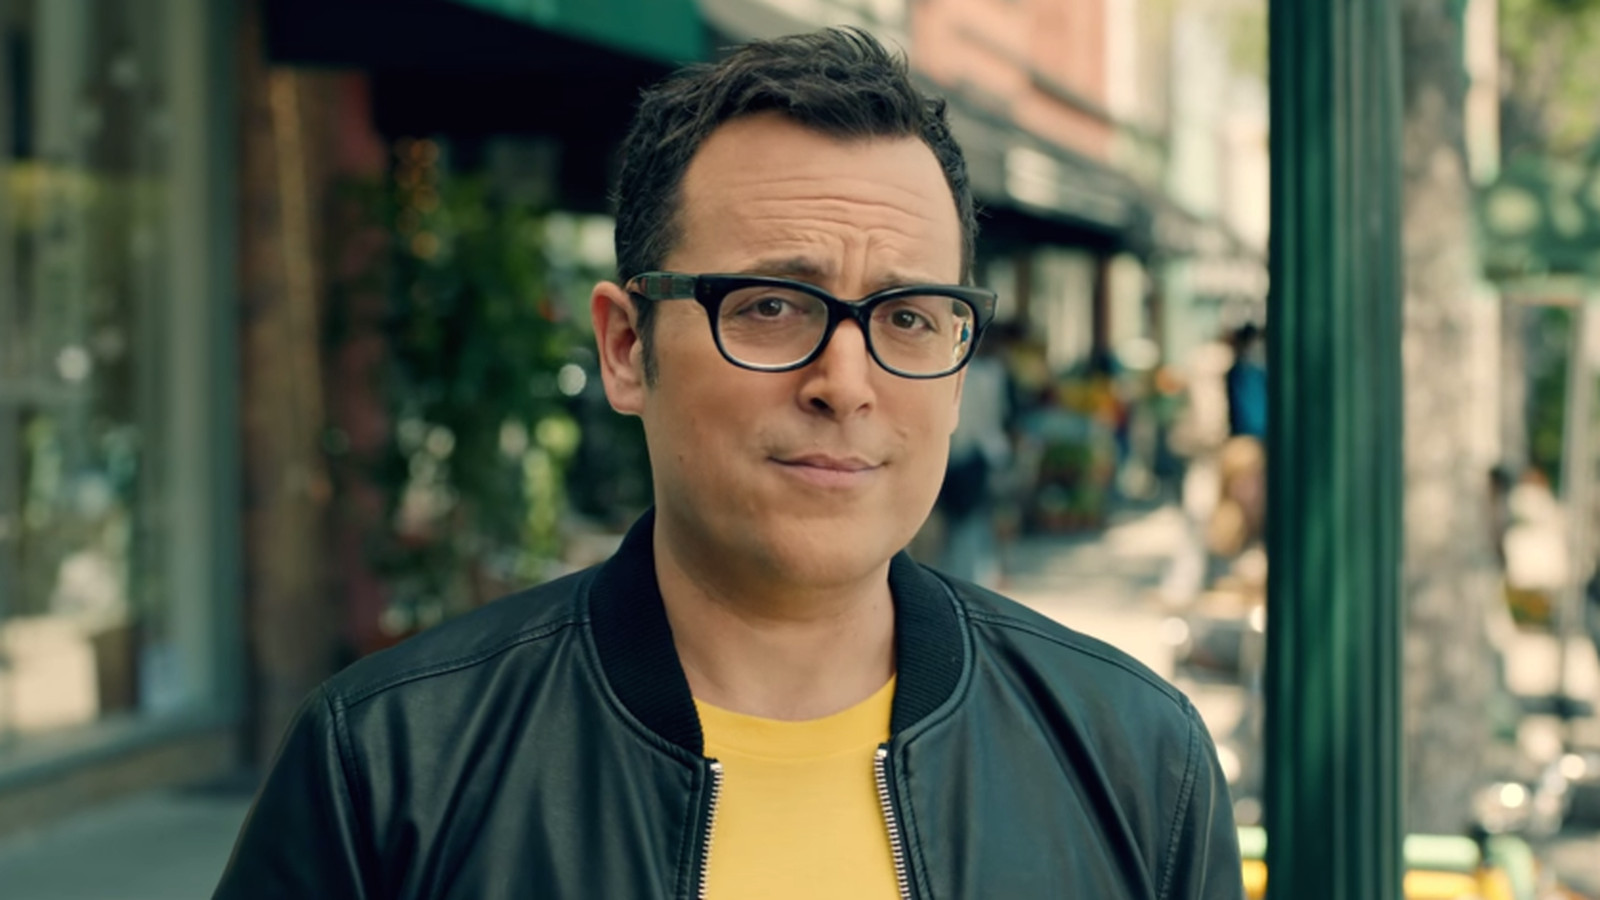 The old Verizon guy, now new Sprint guy, really does look ...